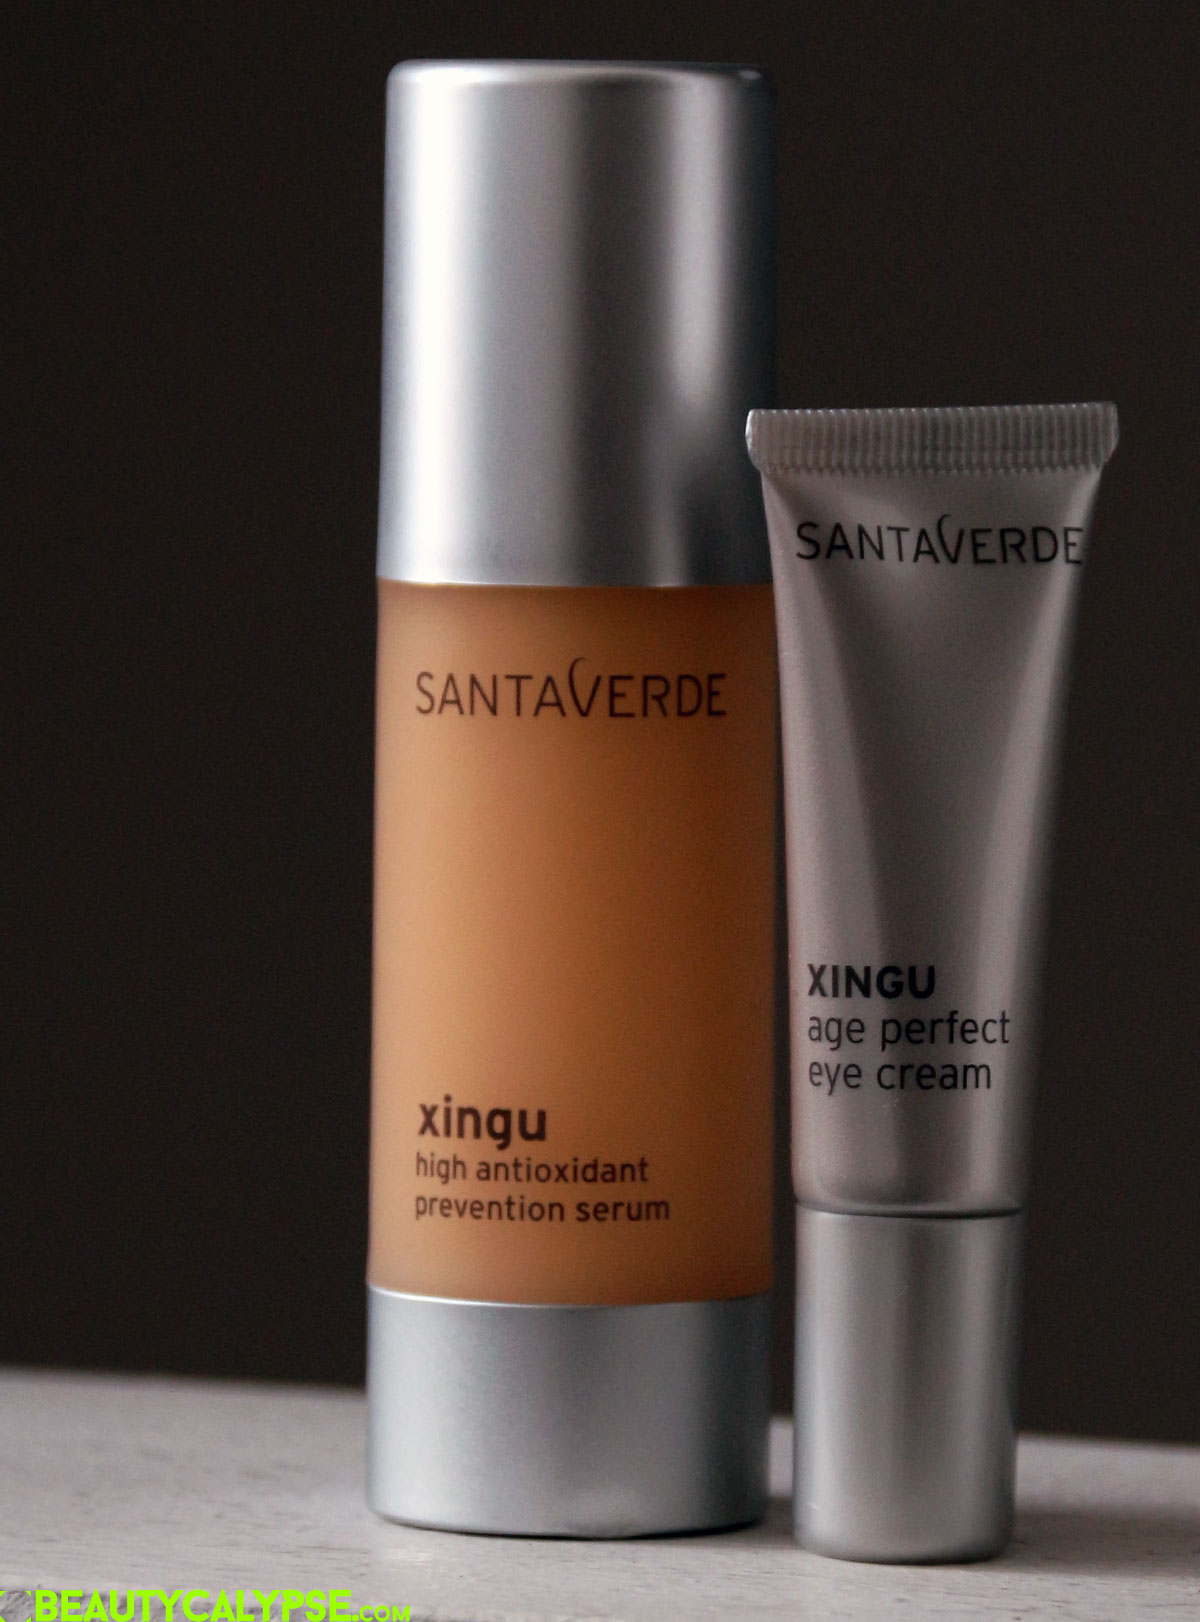 Santaverde_Xingu_Serum_Eye_Cream_Review